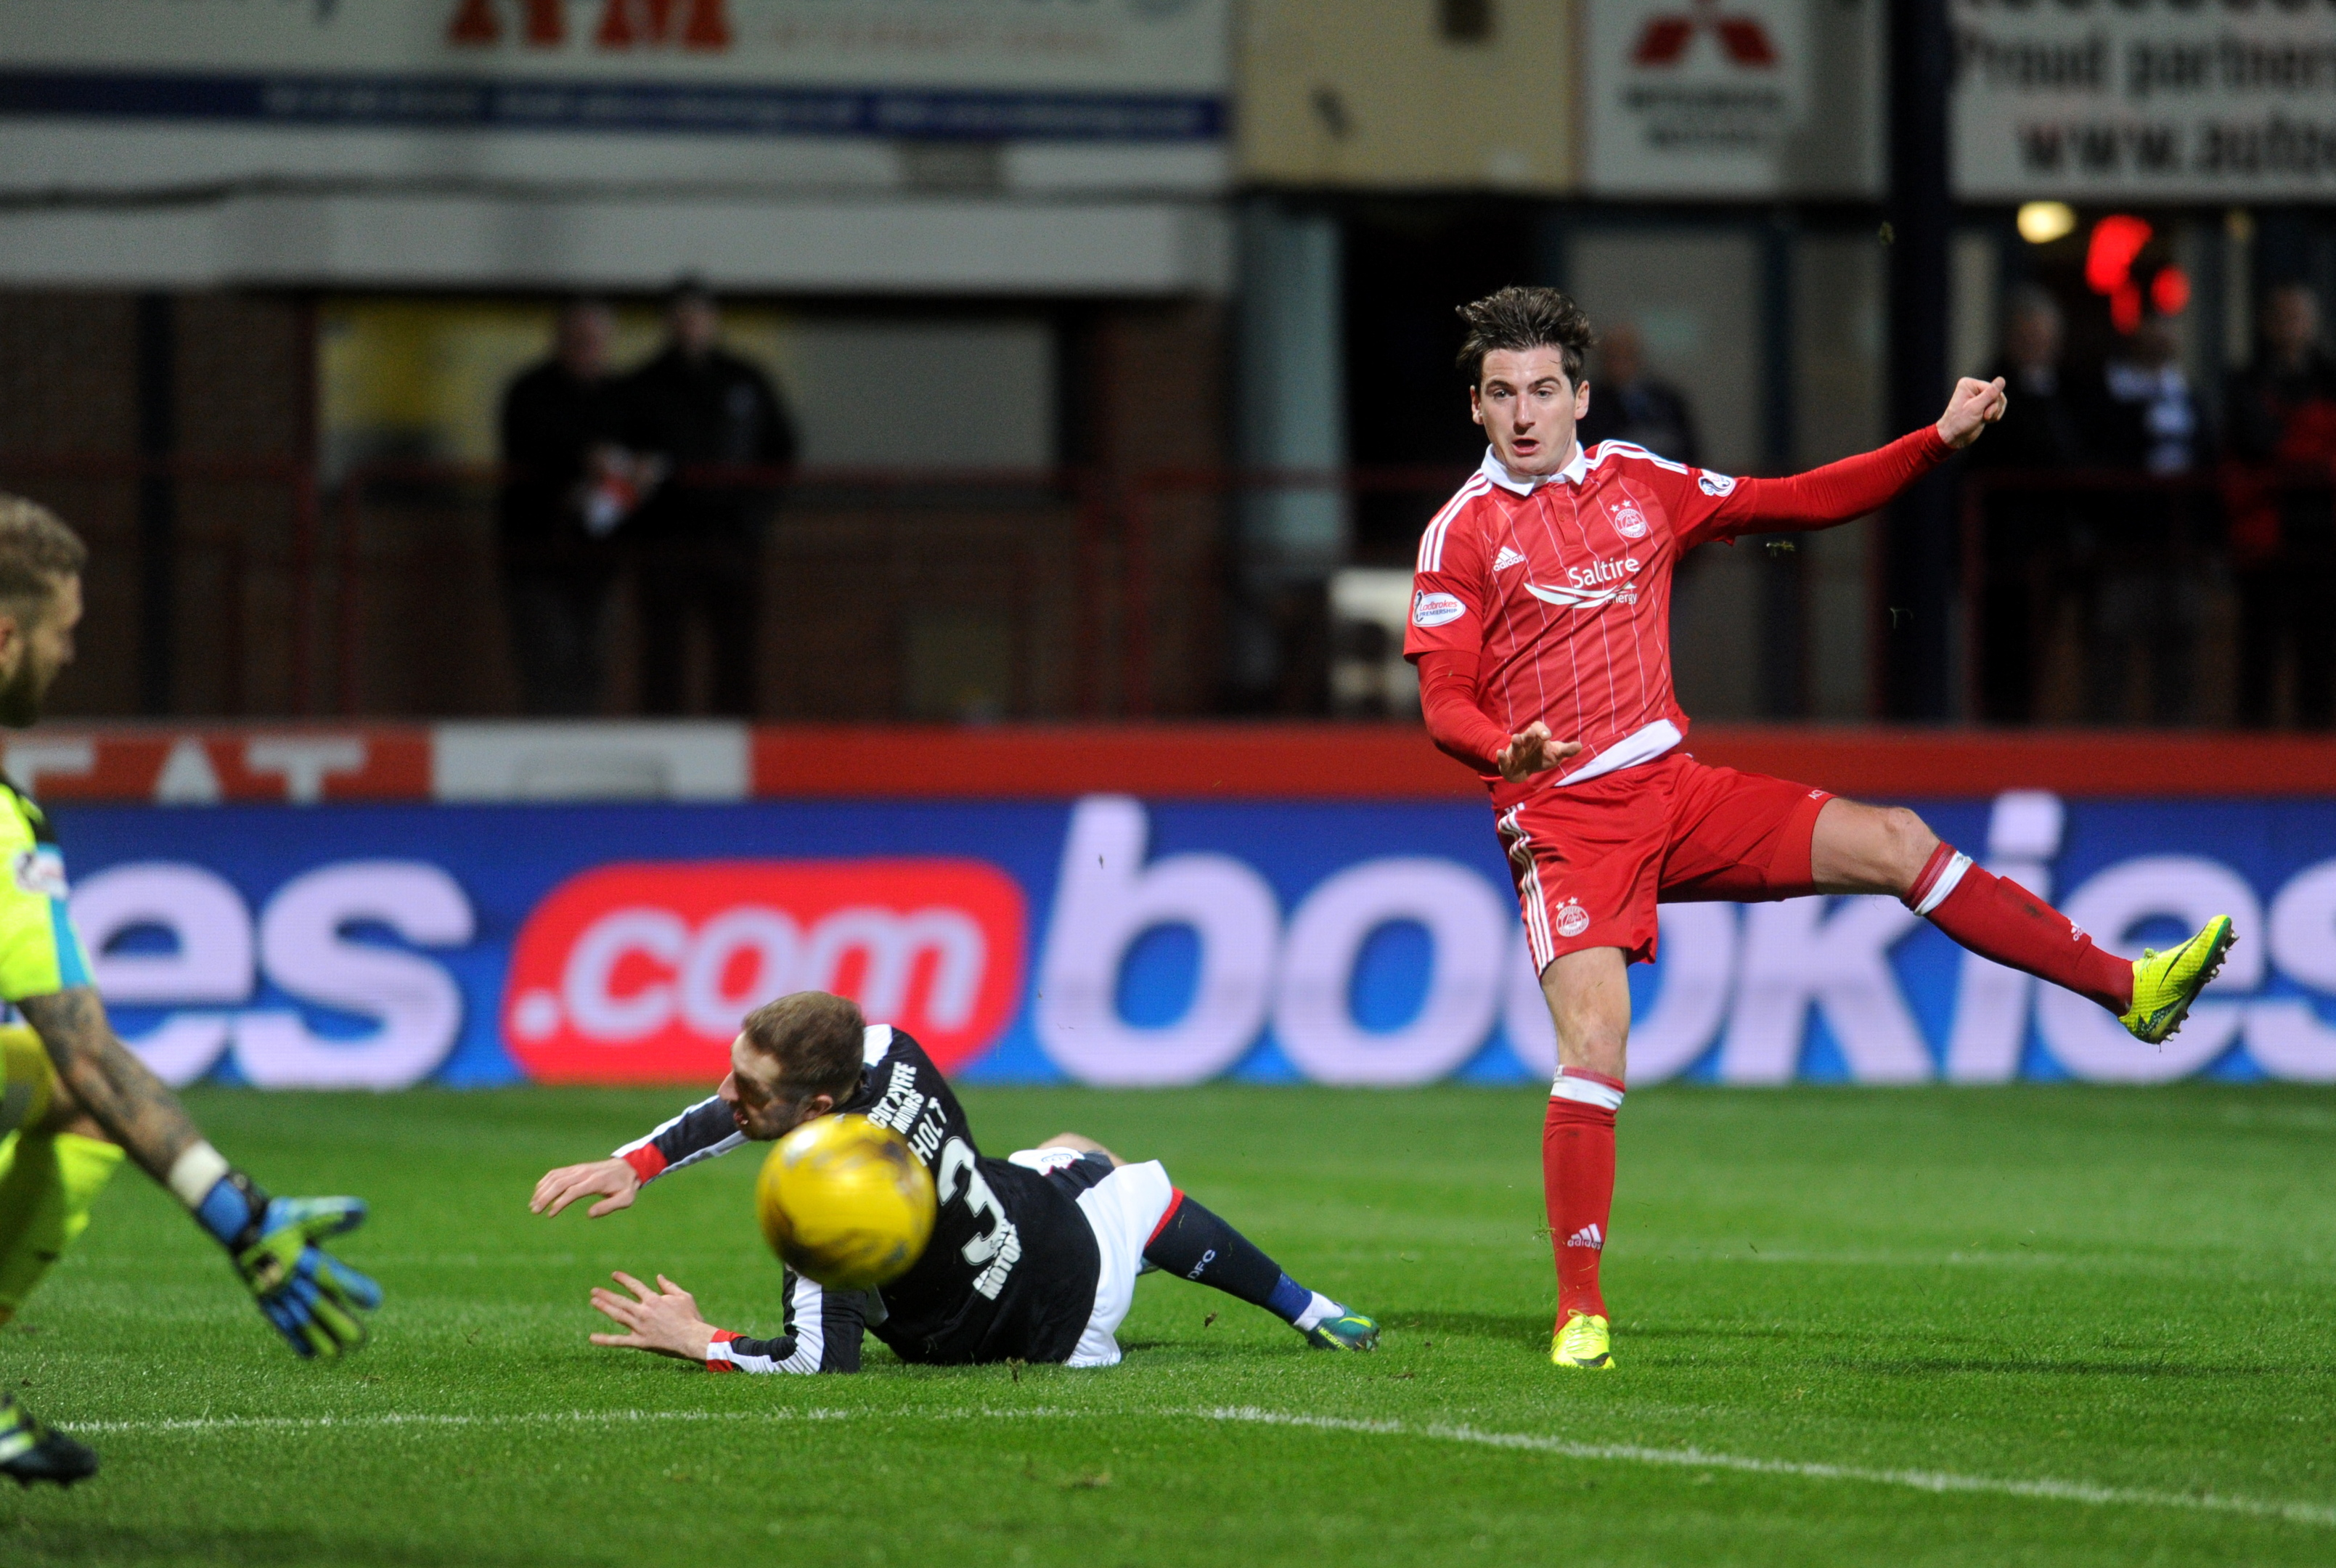 Kenny McLean firing home against Dundee. (Picture by Darrell Benns.)